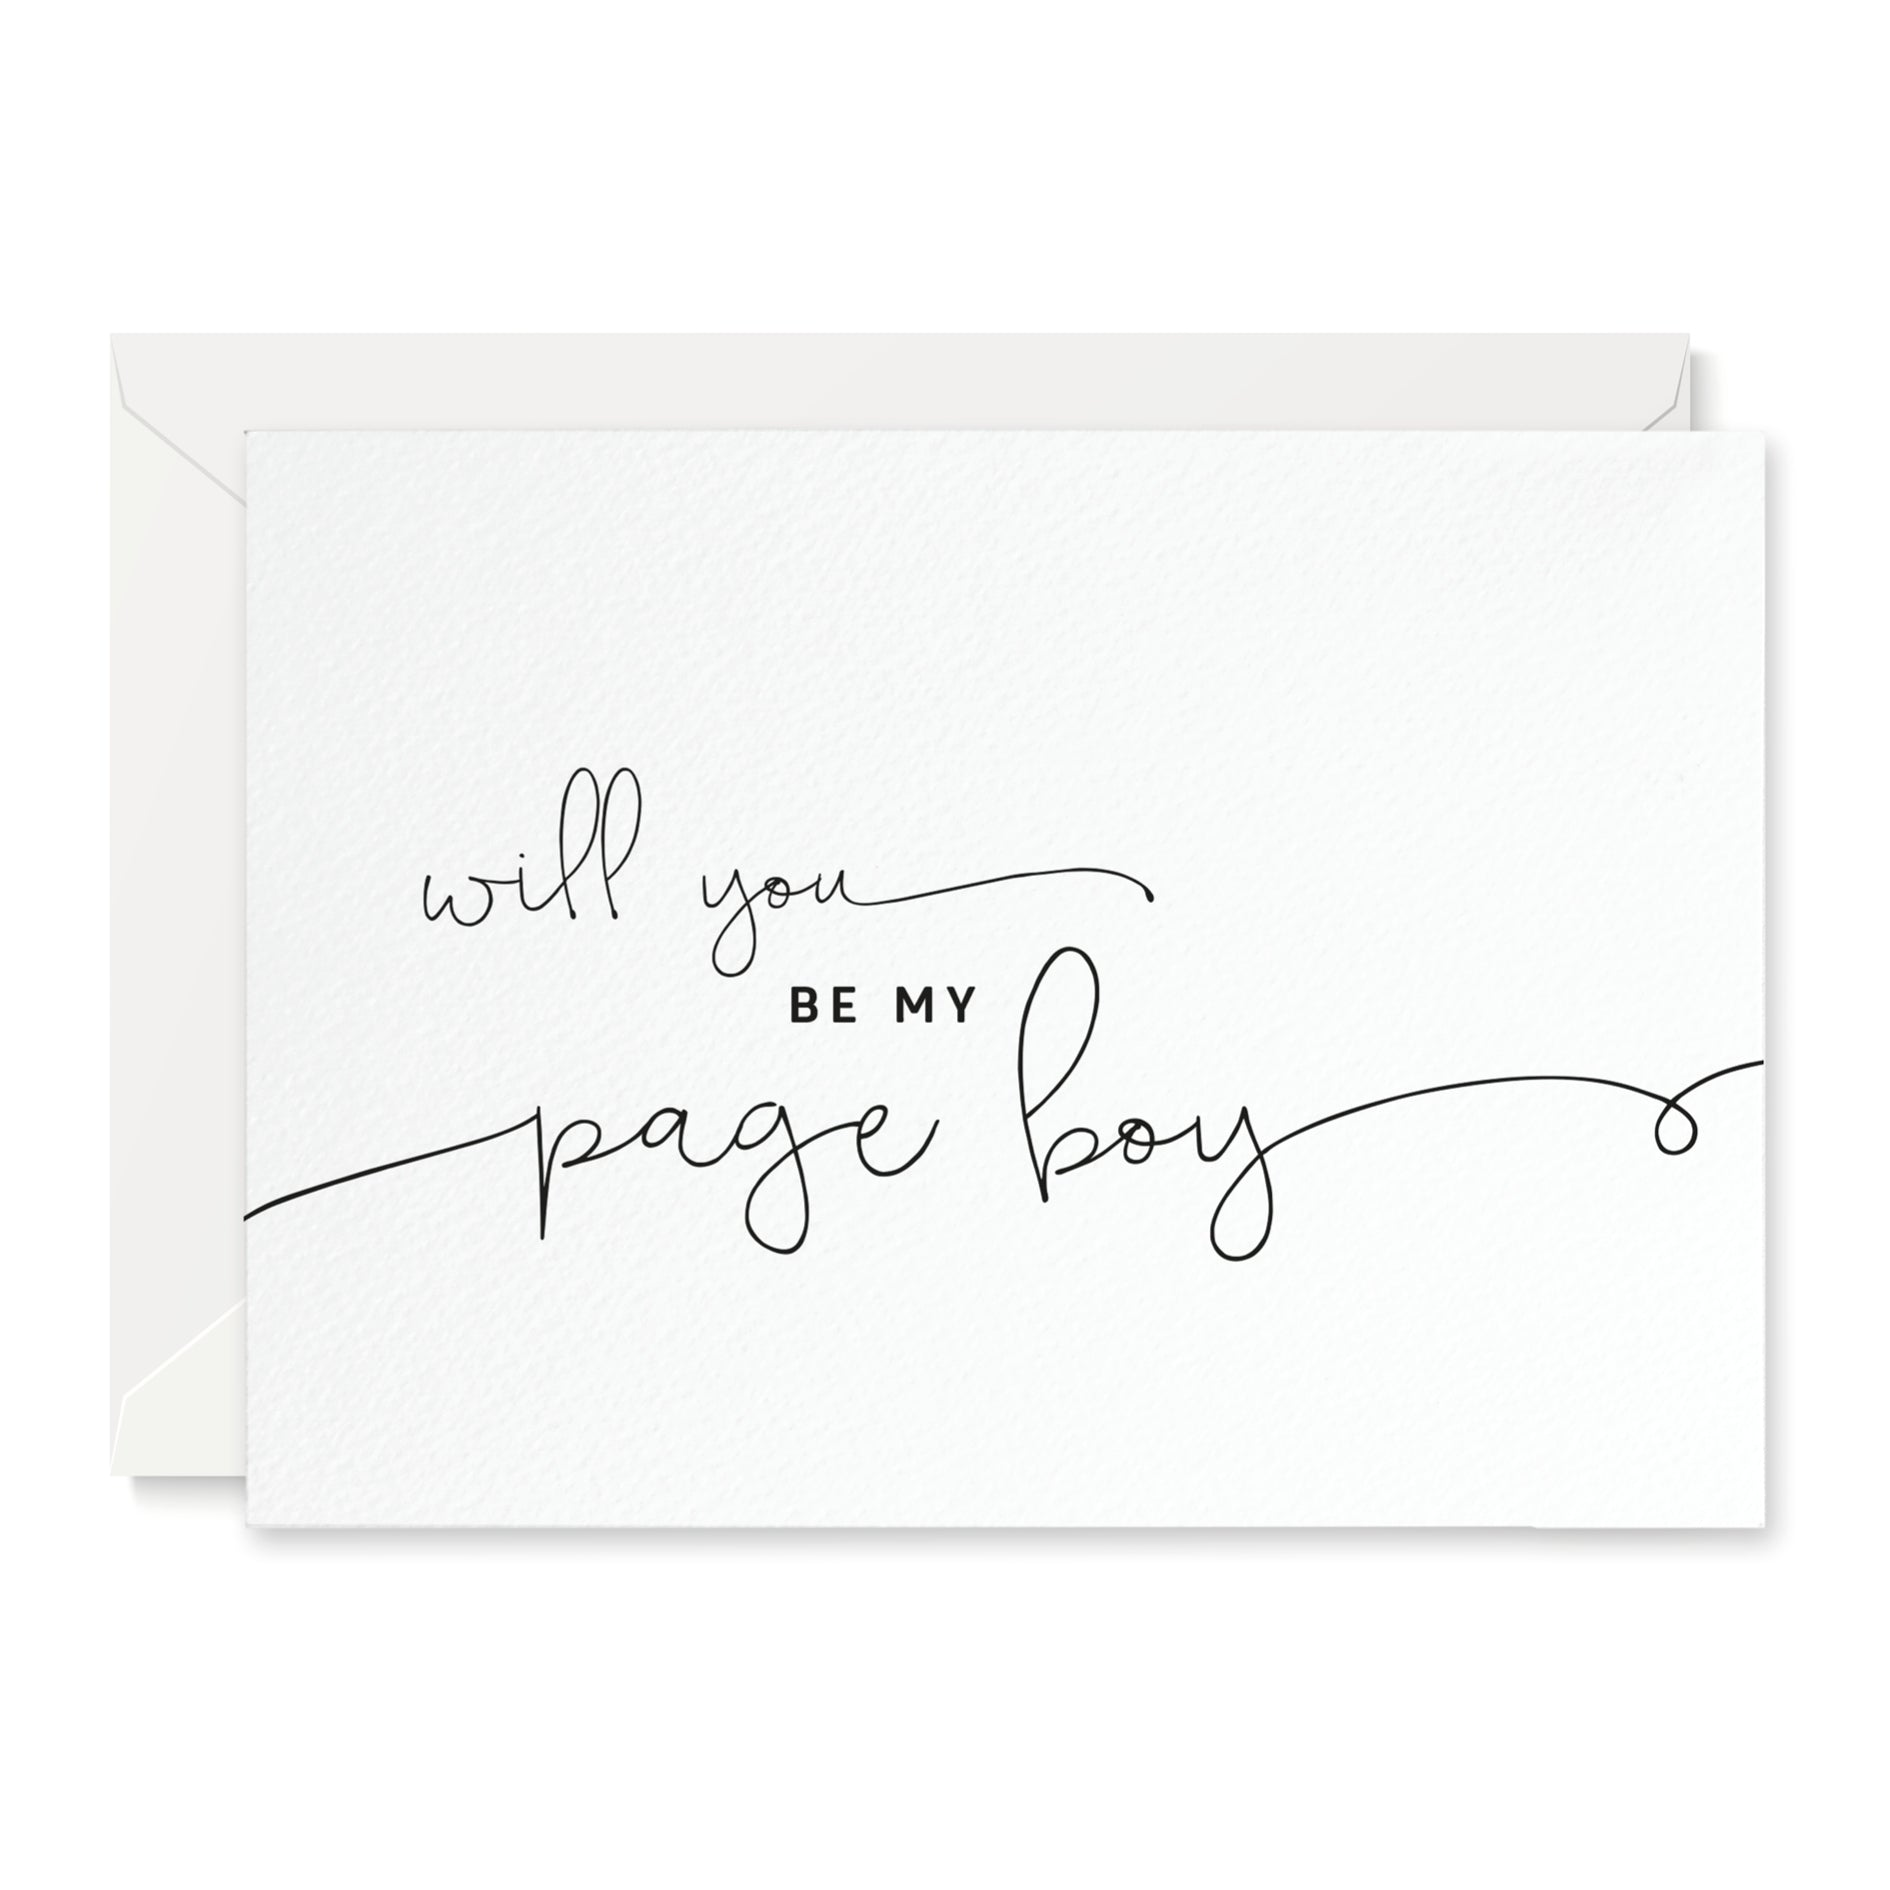 Kate 'Will You Be My Page Boy' Card